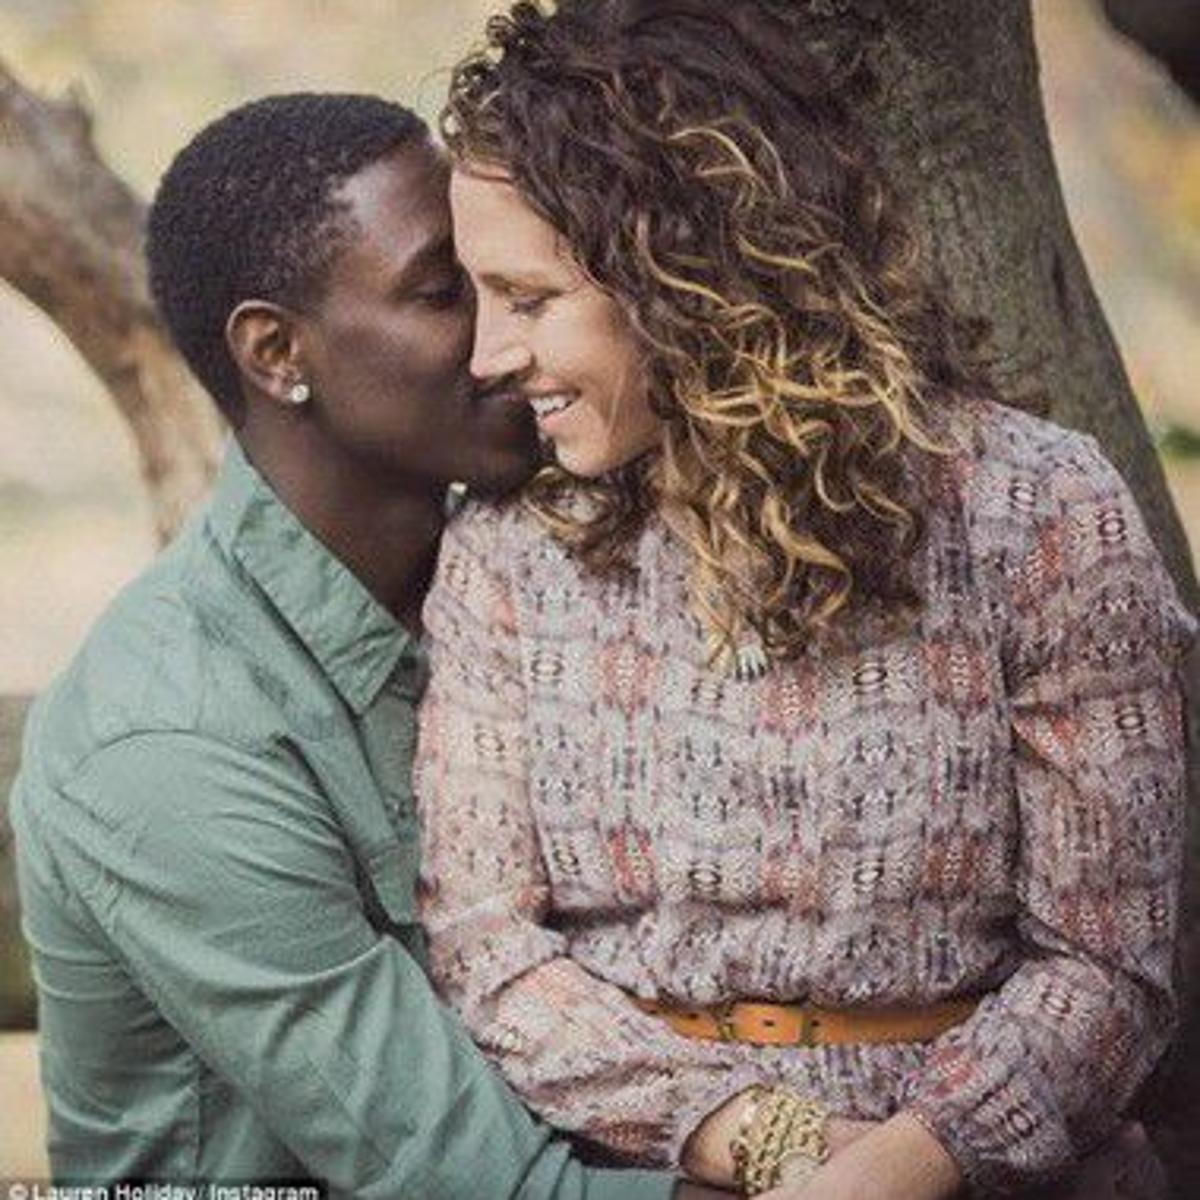 Jrue Holiday to miss start of season as pregnant wife Lauren